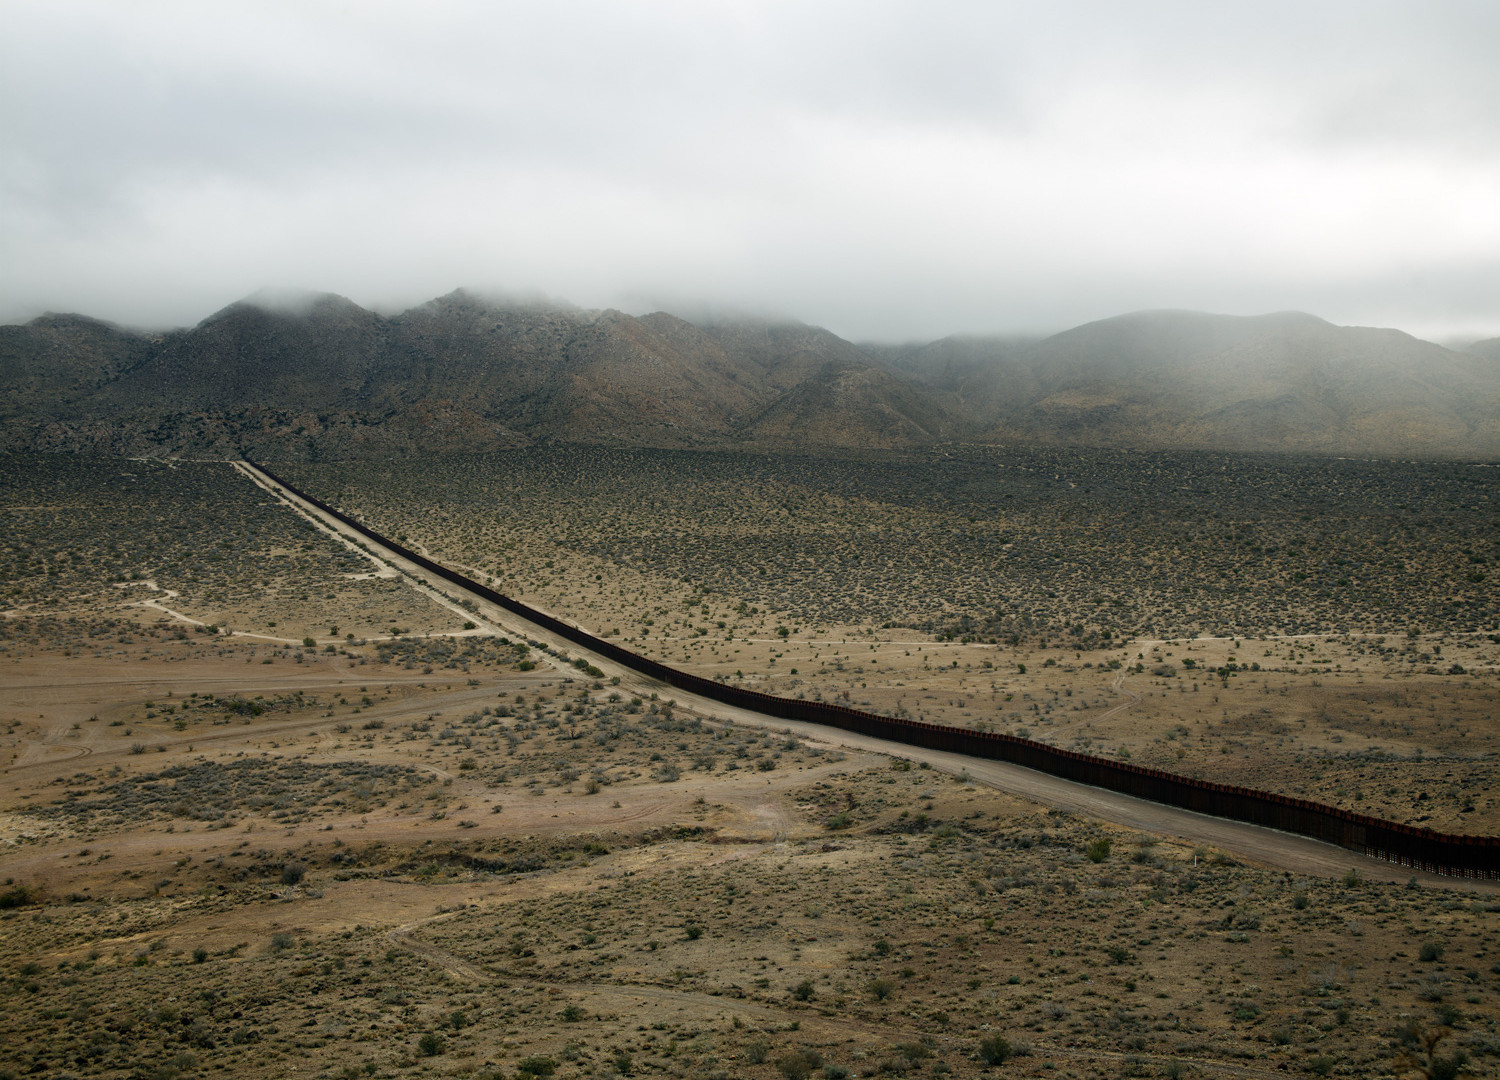 Richard Misrach, The Wall #1, Jacumba, CA, 2009